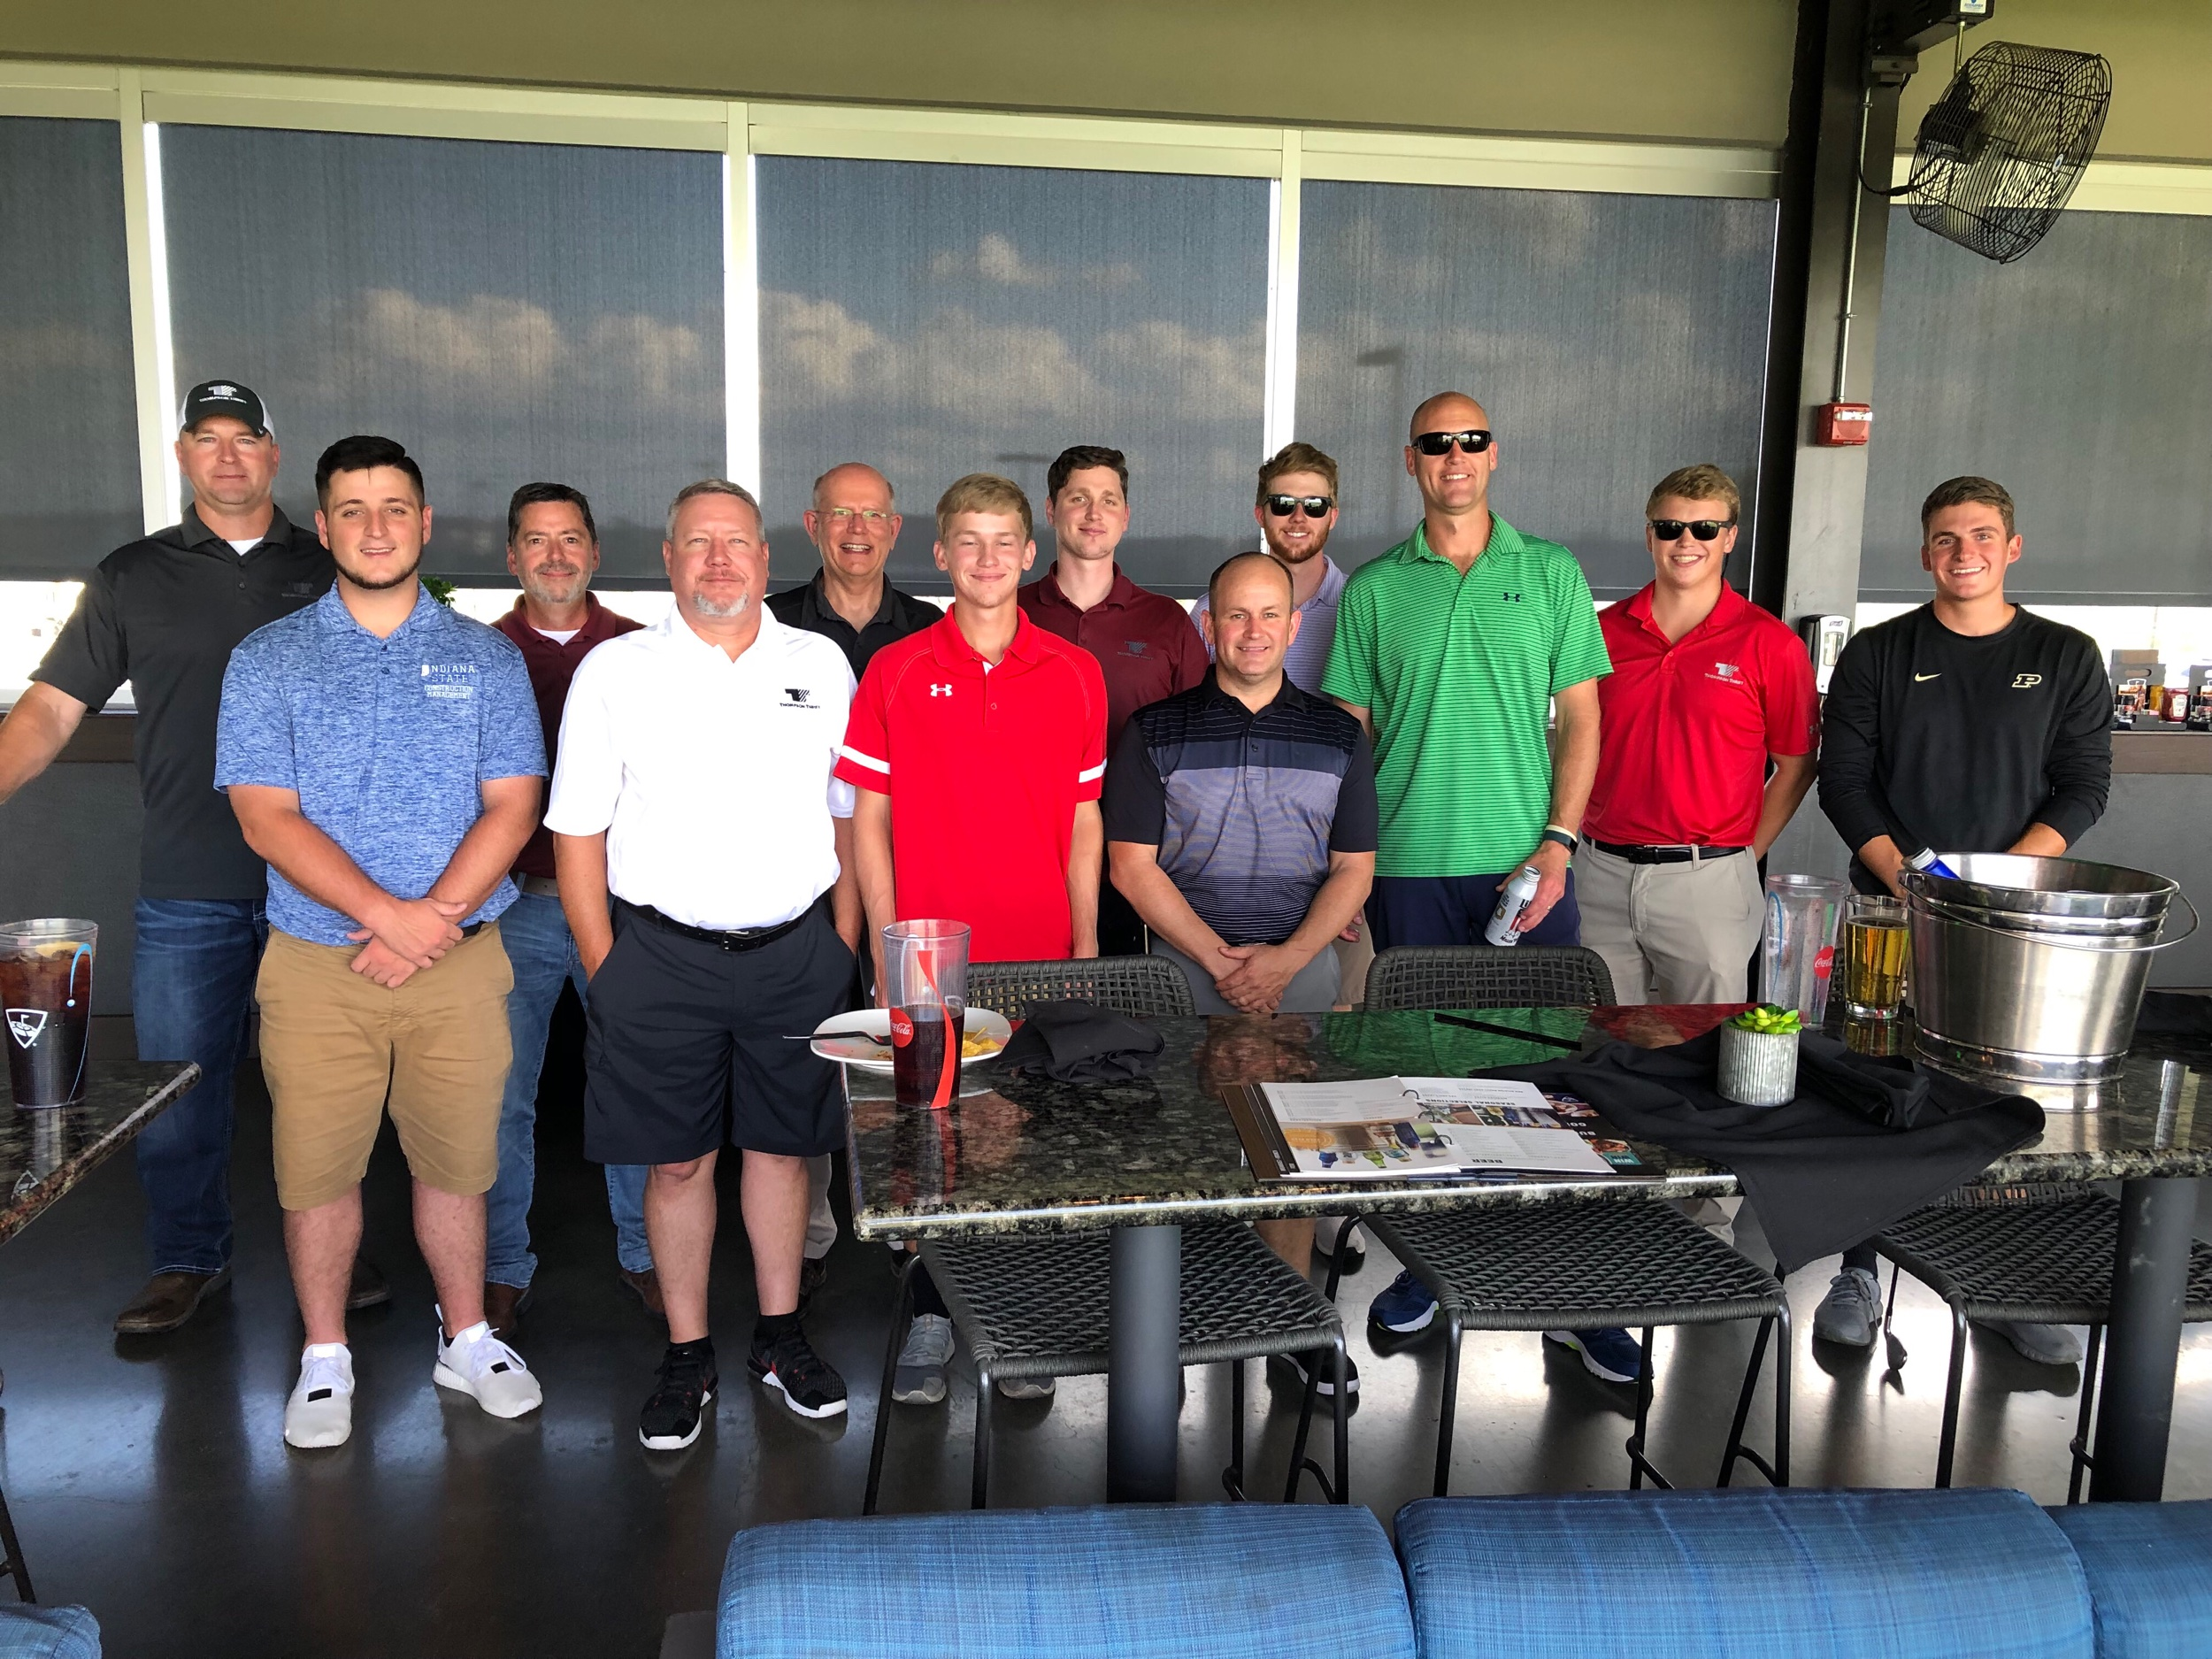 Work hard. Play hard. After the internship presentations, the group went to Top Golf to celebrate their accomplishments and have a little fun!